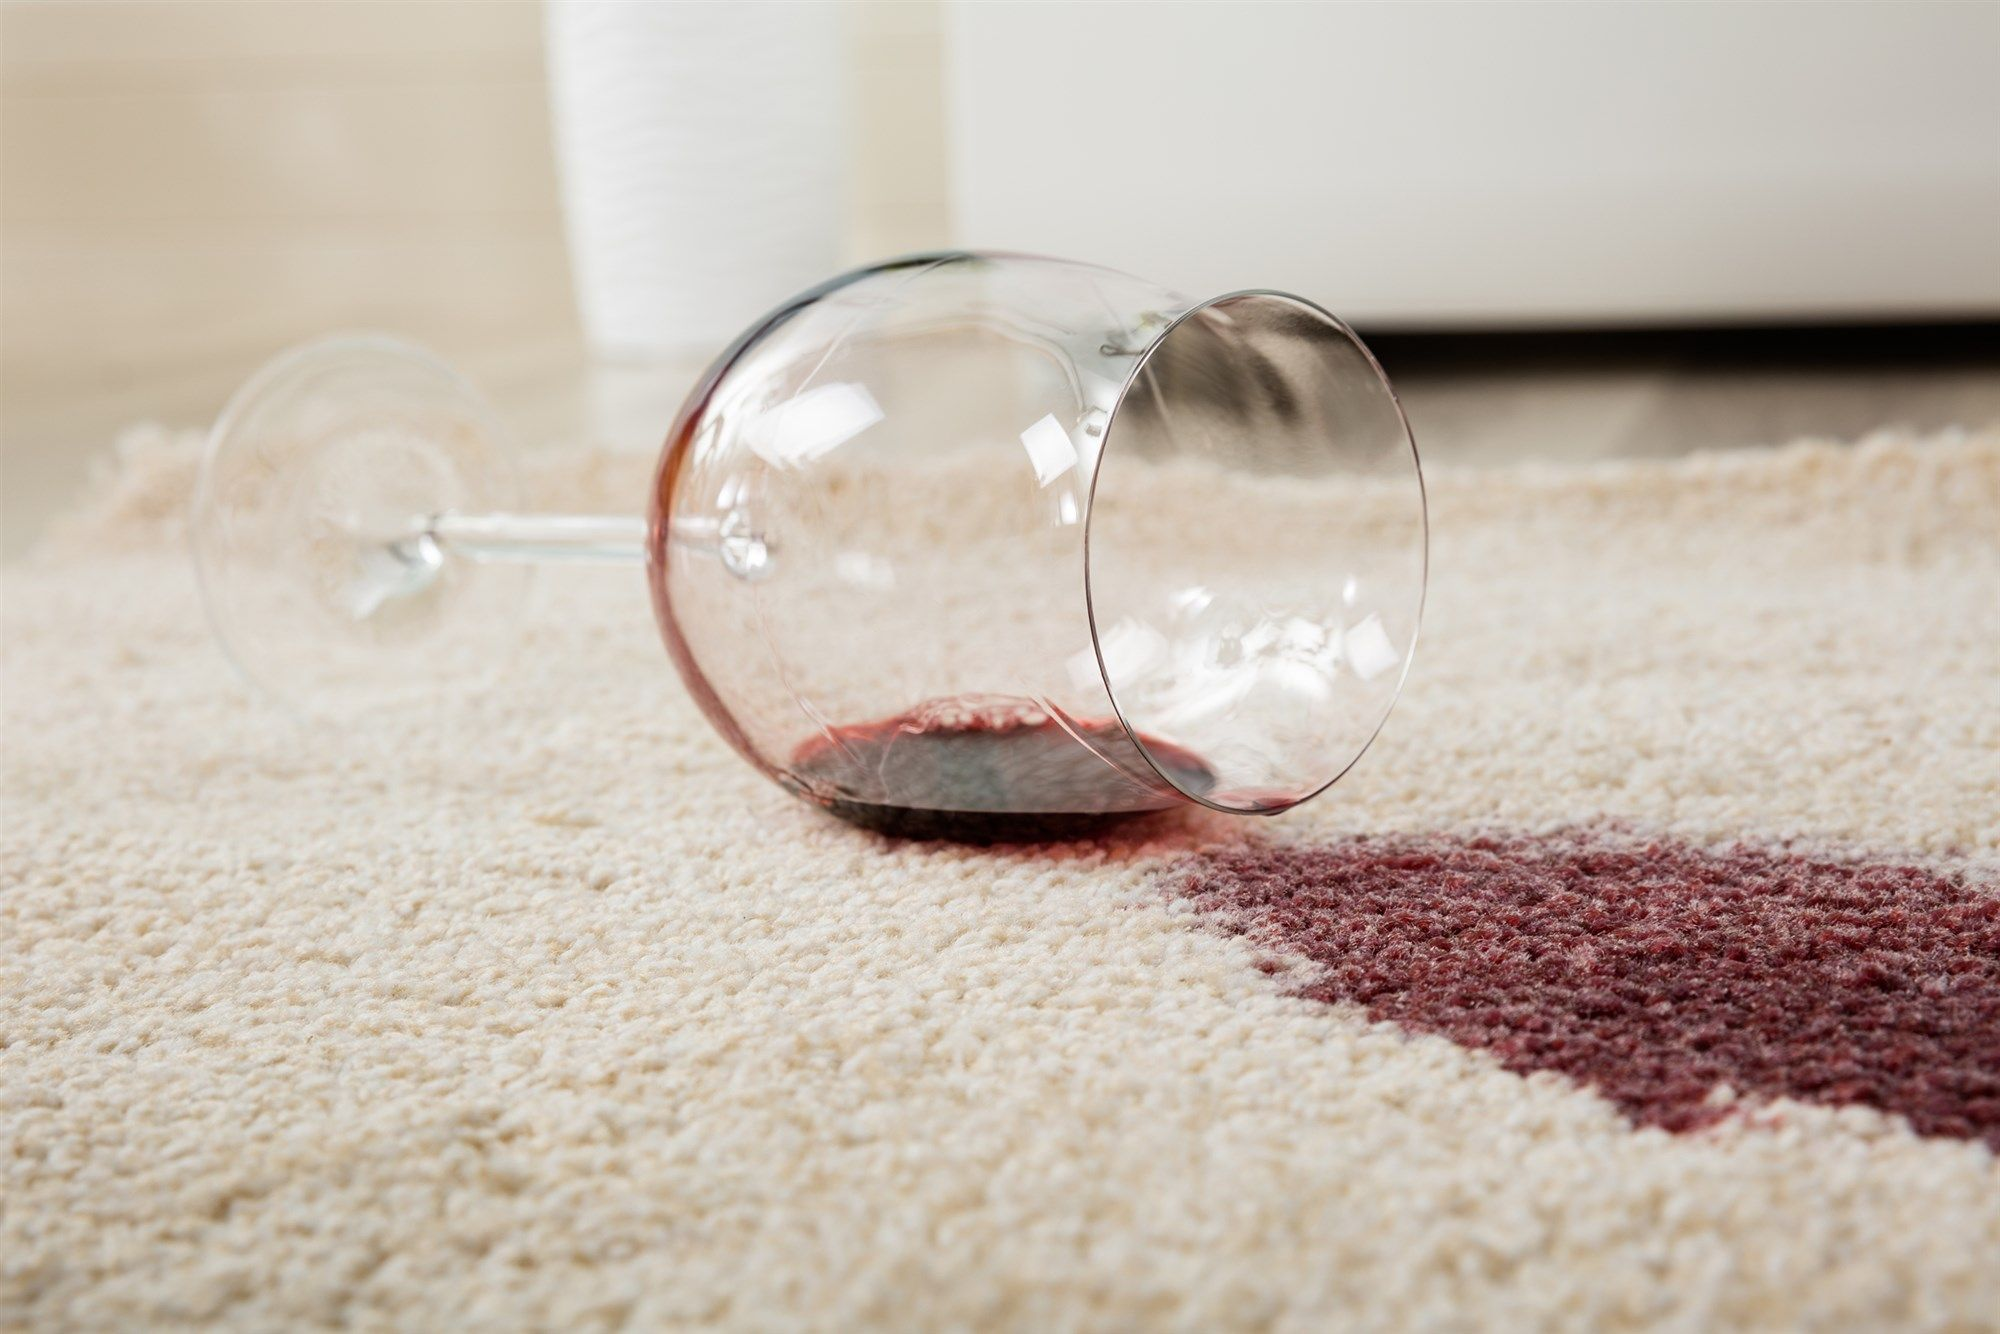 How To Get Stains Out Of Almost Anything Red Wine Stain Removal Red Wine Stains Wine Stains